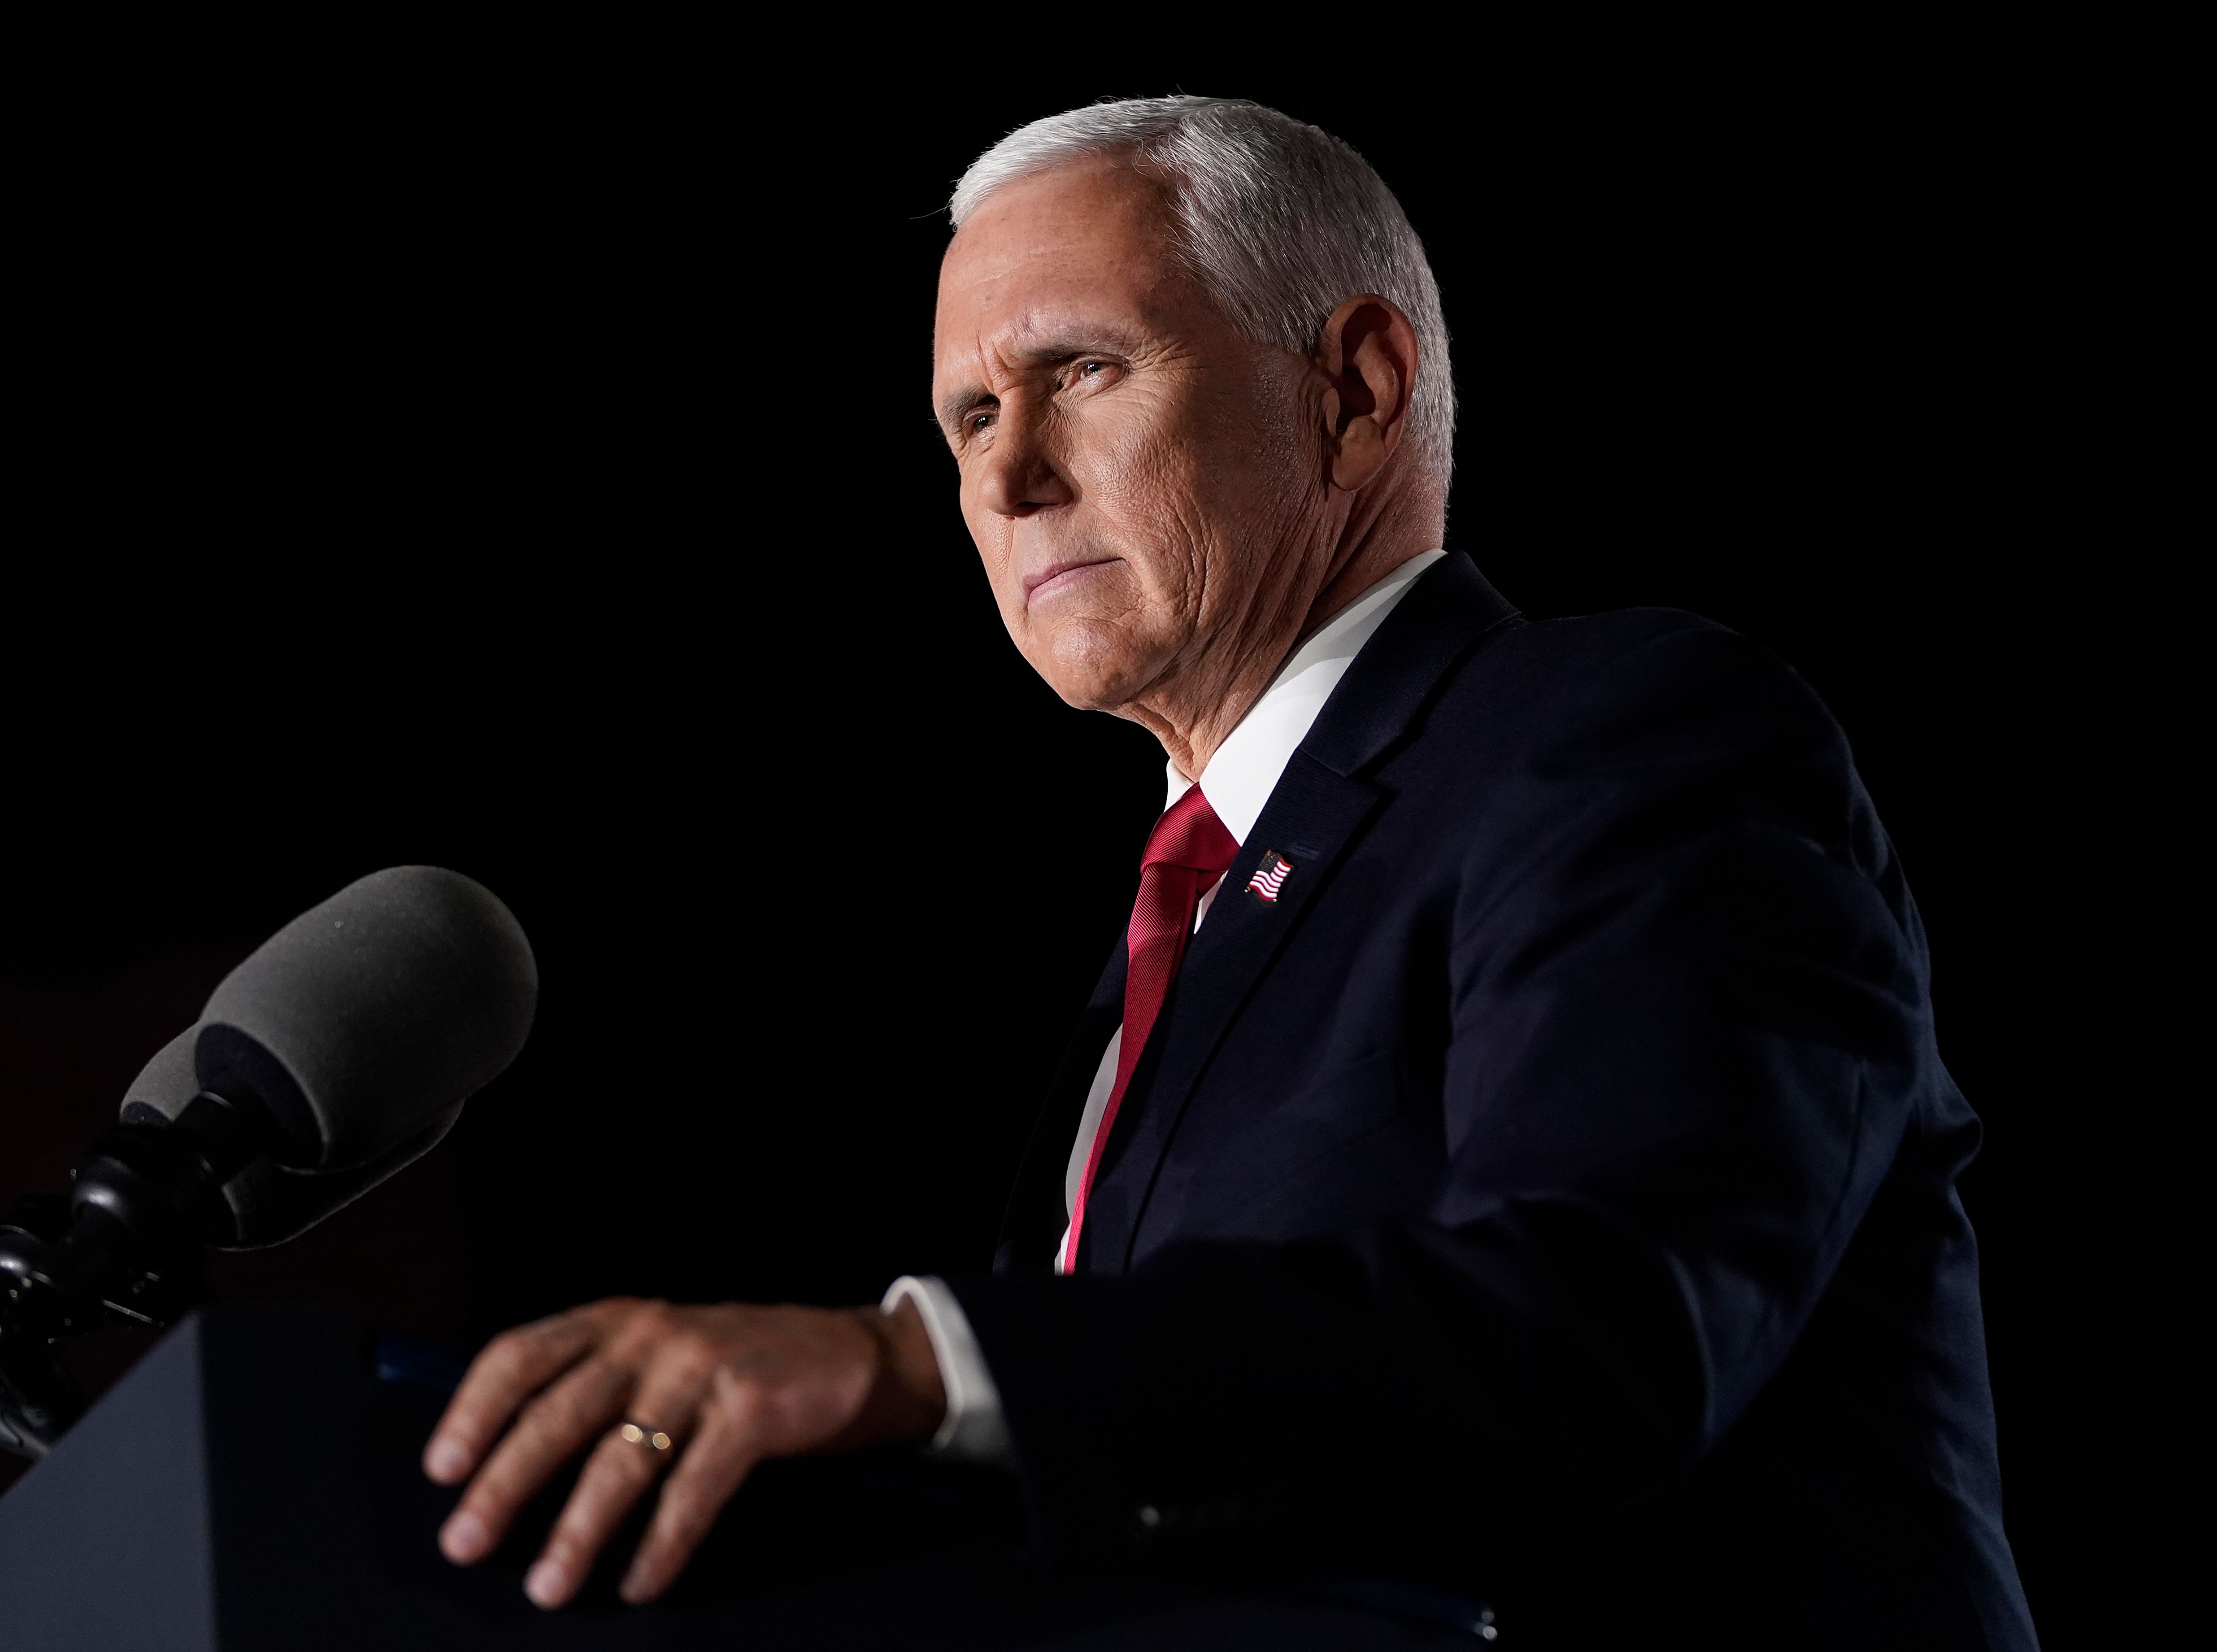 Mike Pence speaks at an event.